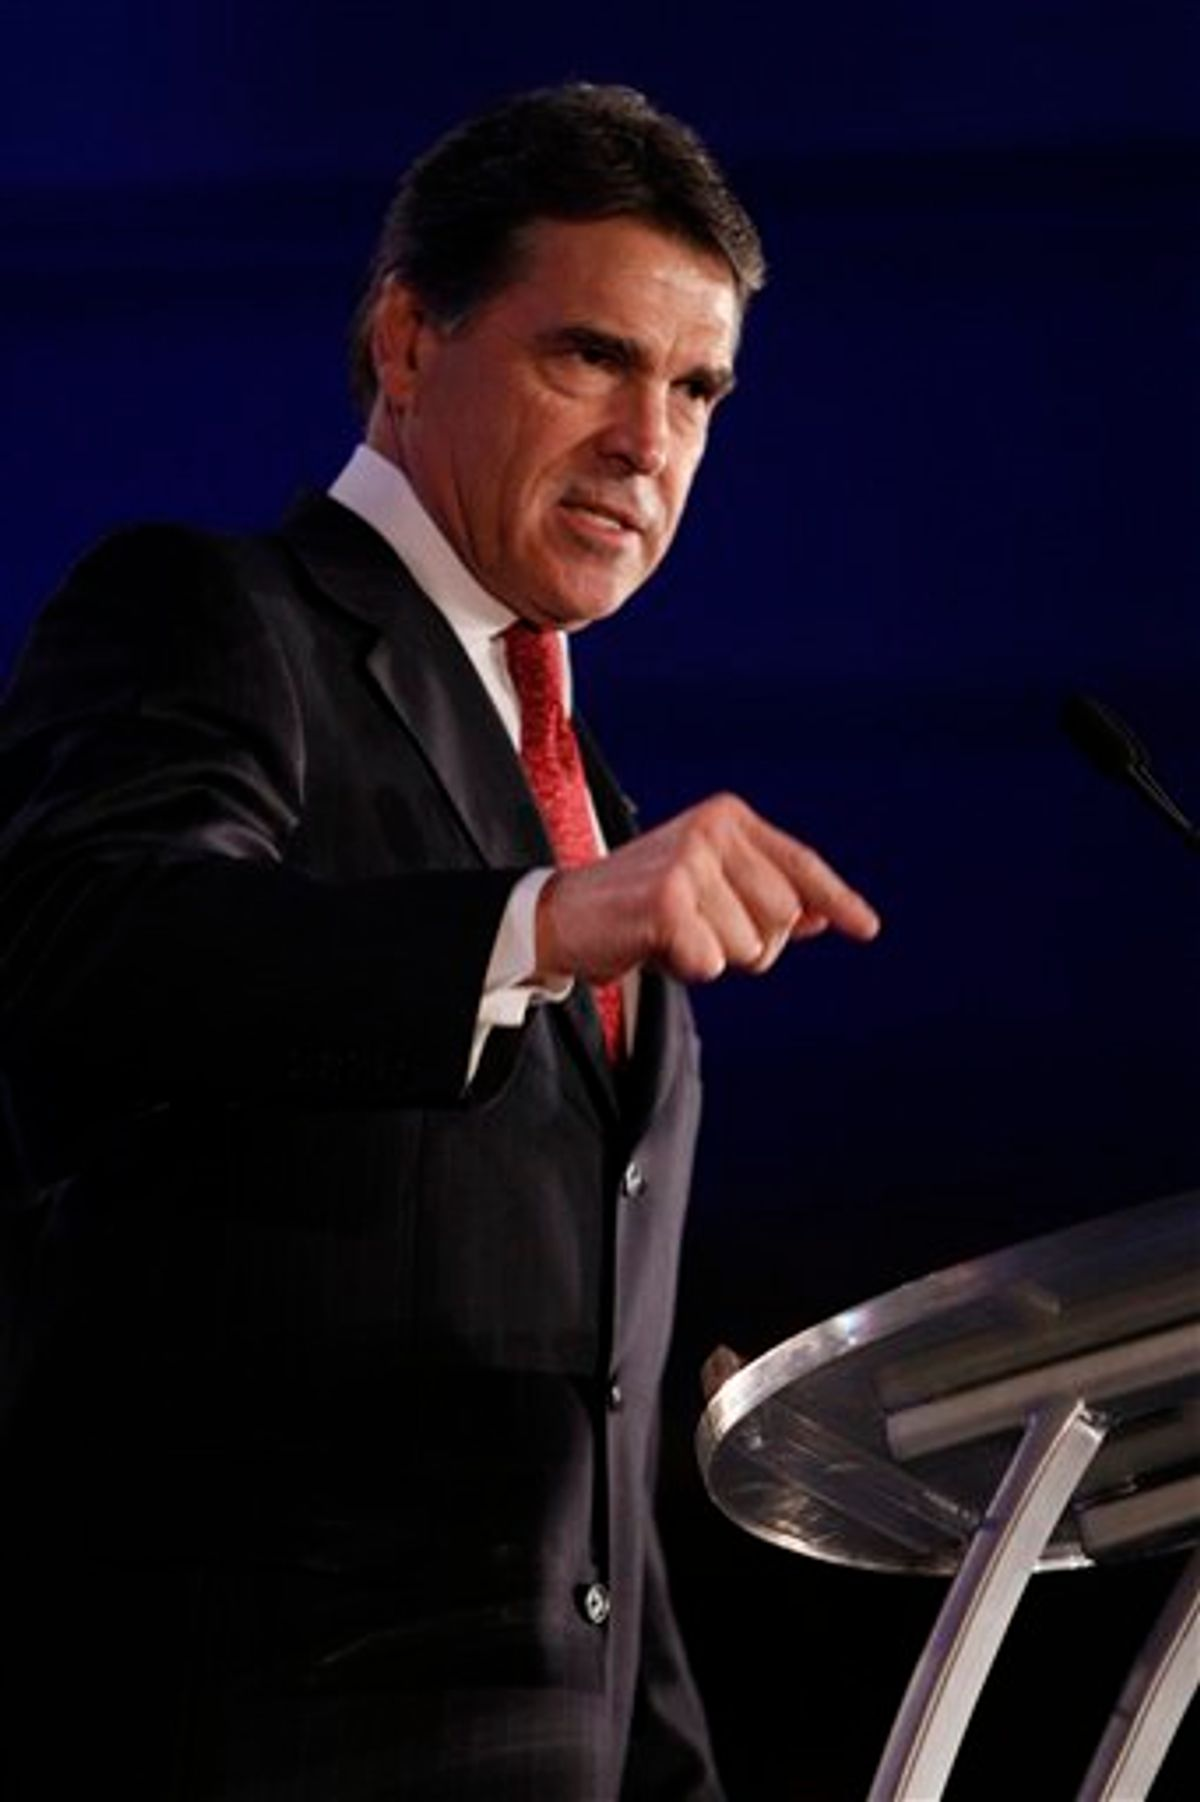 FILE - In this June 18, 2011 file photo, Texas Gov. Rick Perry speaks at the Republican Leadership Conference in New Orleans. If Perry decides to run for president, he'll attack from the Republican Party's right flank, as he would be among the GOP field's most conservative candidates. (AP Photo/Patrick Semansky, File) (AP)